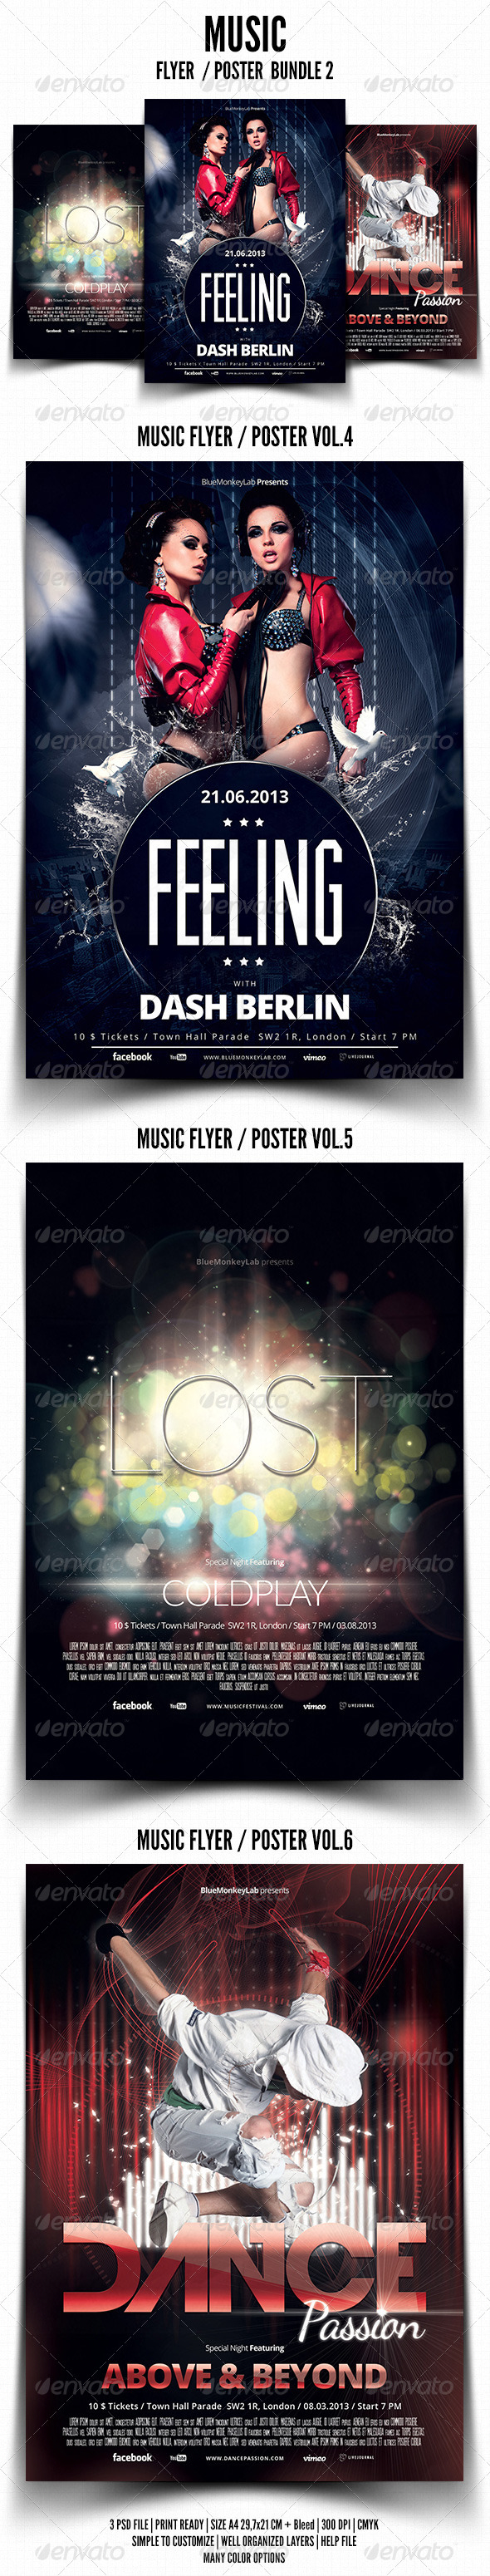 GraphicRiver Music Flyer Poster Bundle 2 5808994